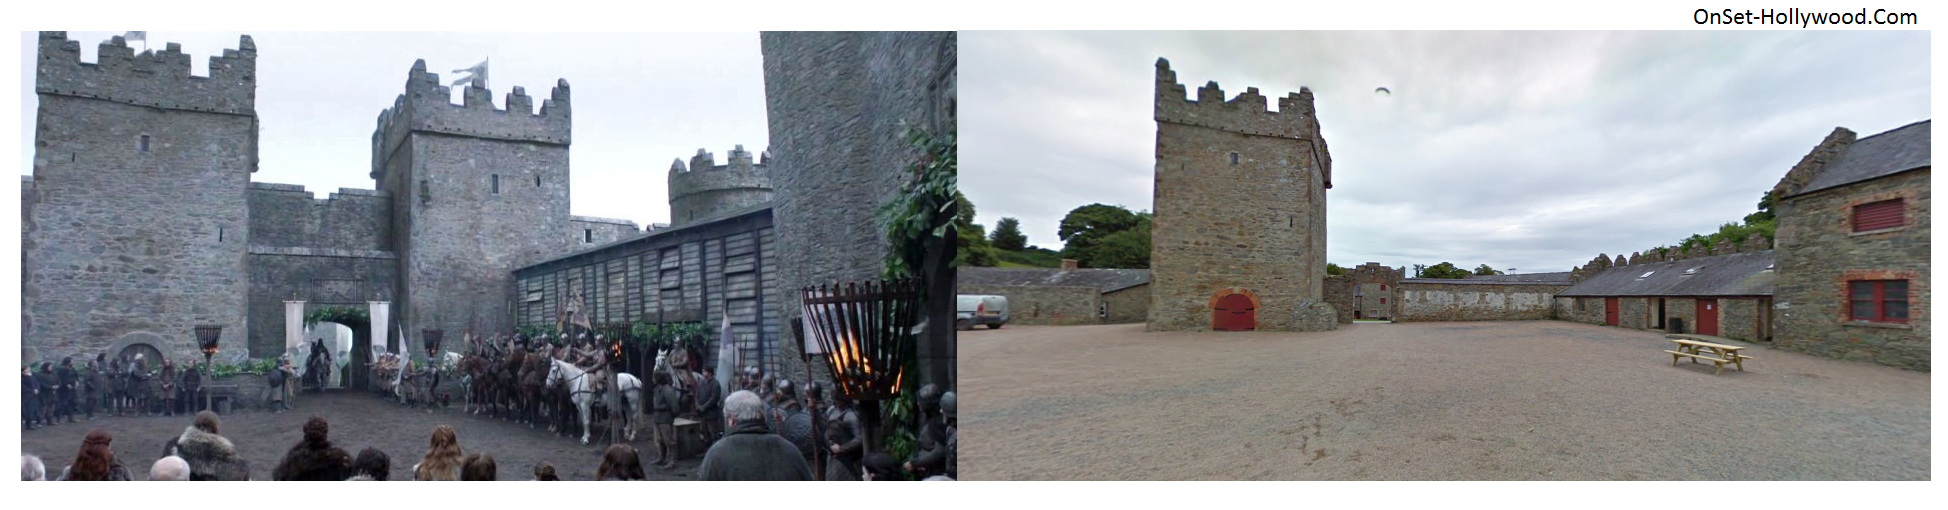 game-of-thrones-Winterfell-filming-locations